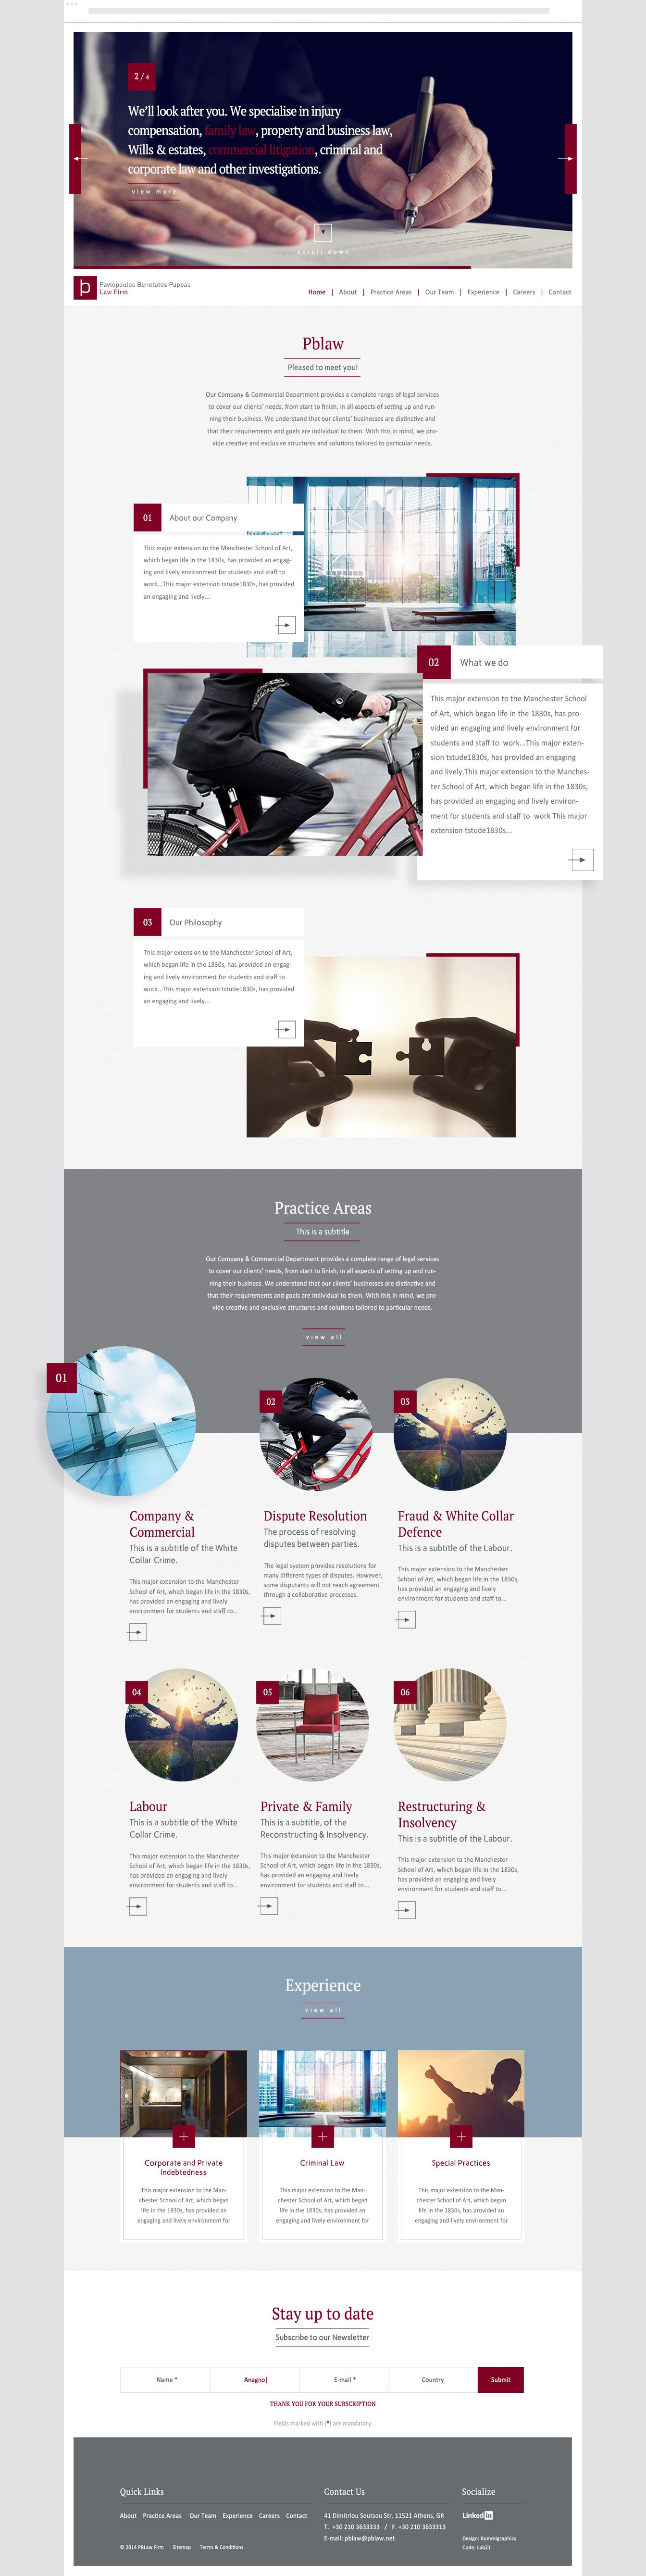 Kommigraphics Pavlopoulos Benetatos Pappas Law Firm With Images